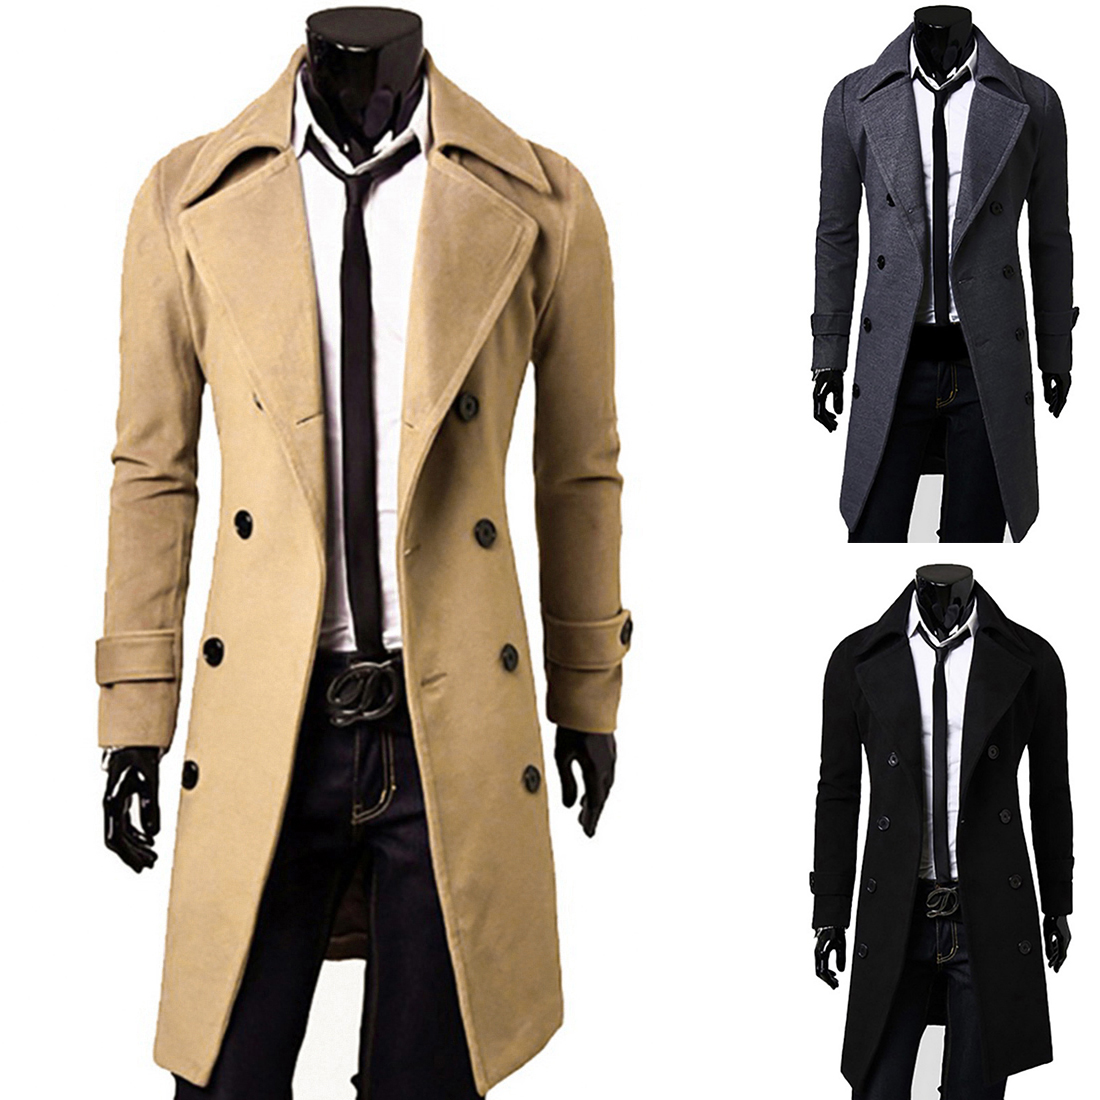 Fashion Men Warm Trench Coat Winter Long Jacket Stylish Double Breasted Peacoat Windproof Slim Men's Coat Overcoat Outwear Parka